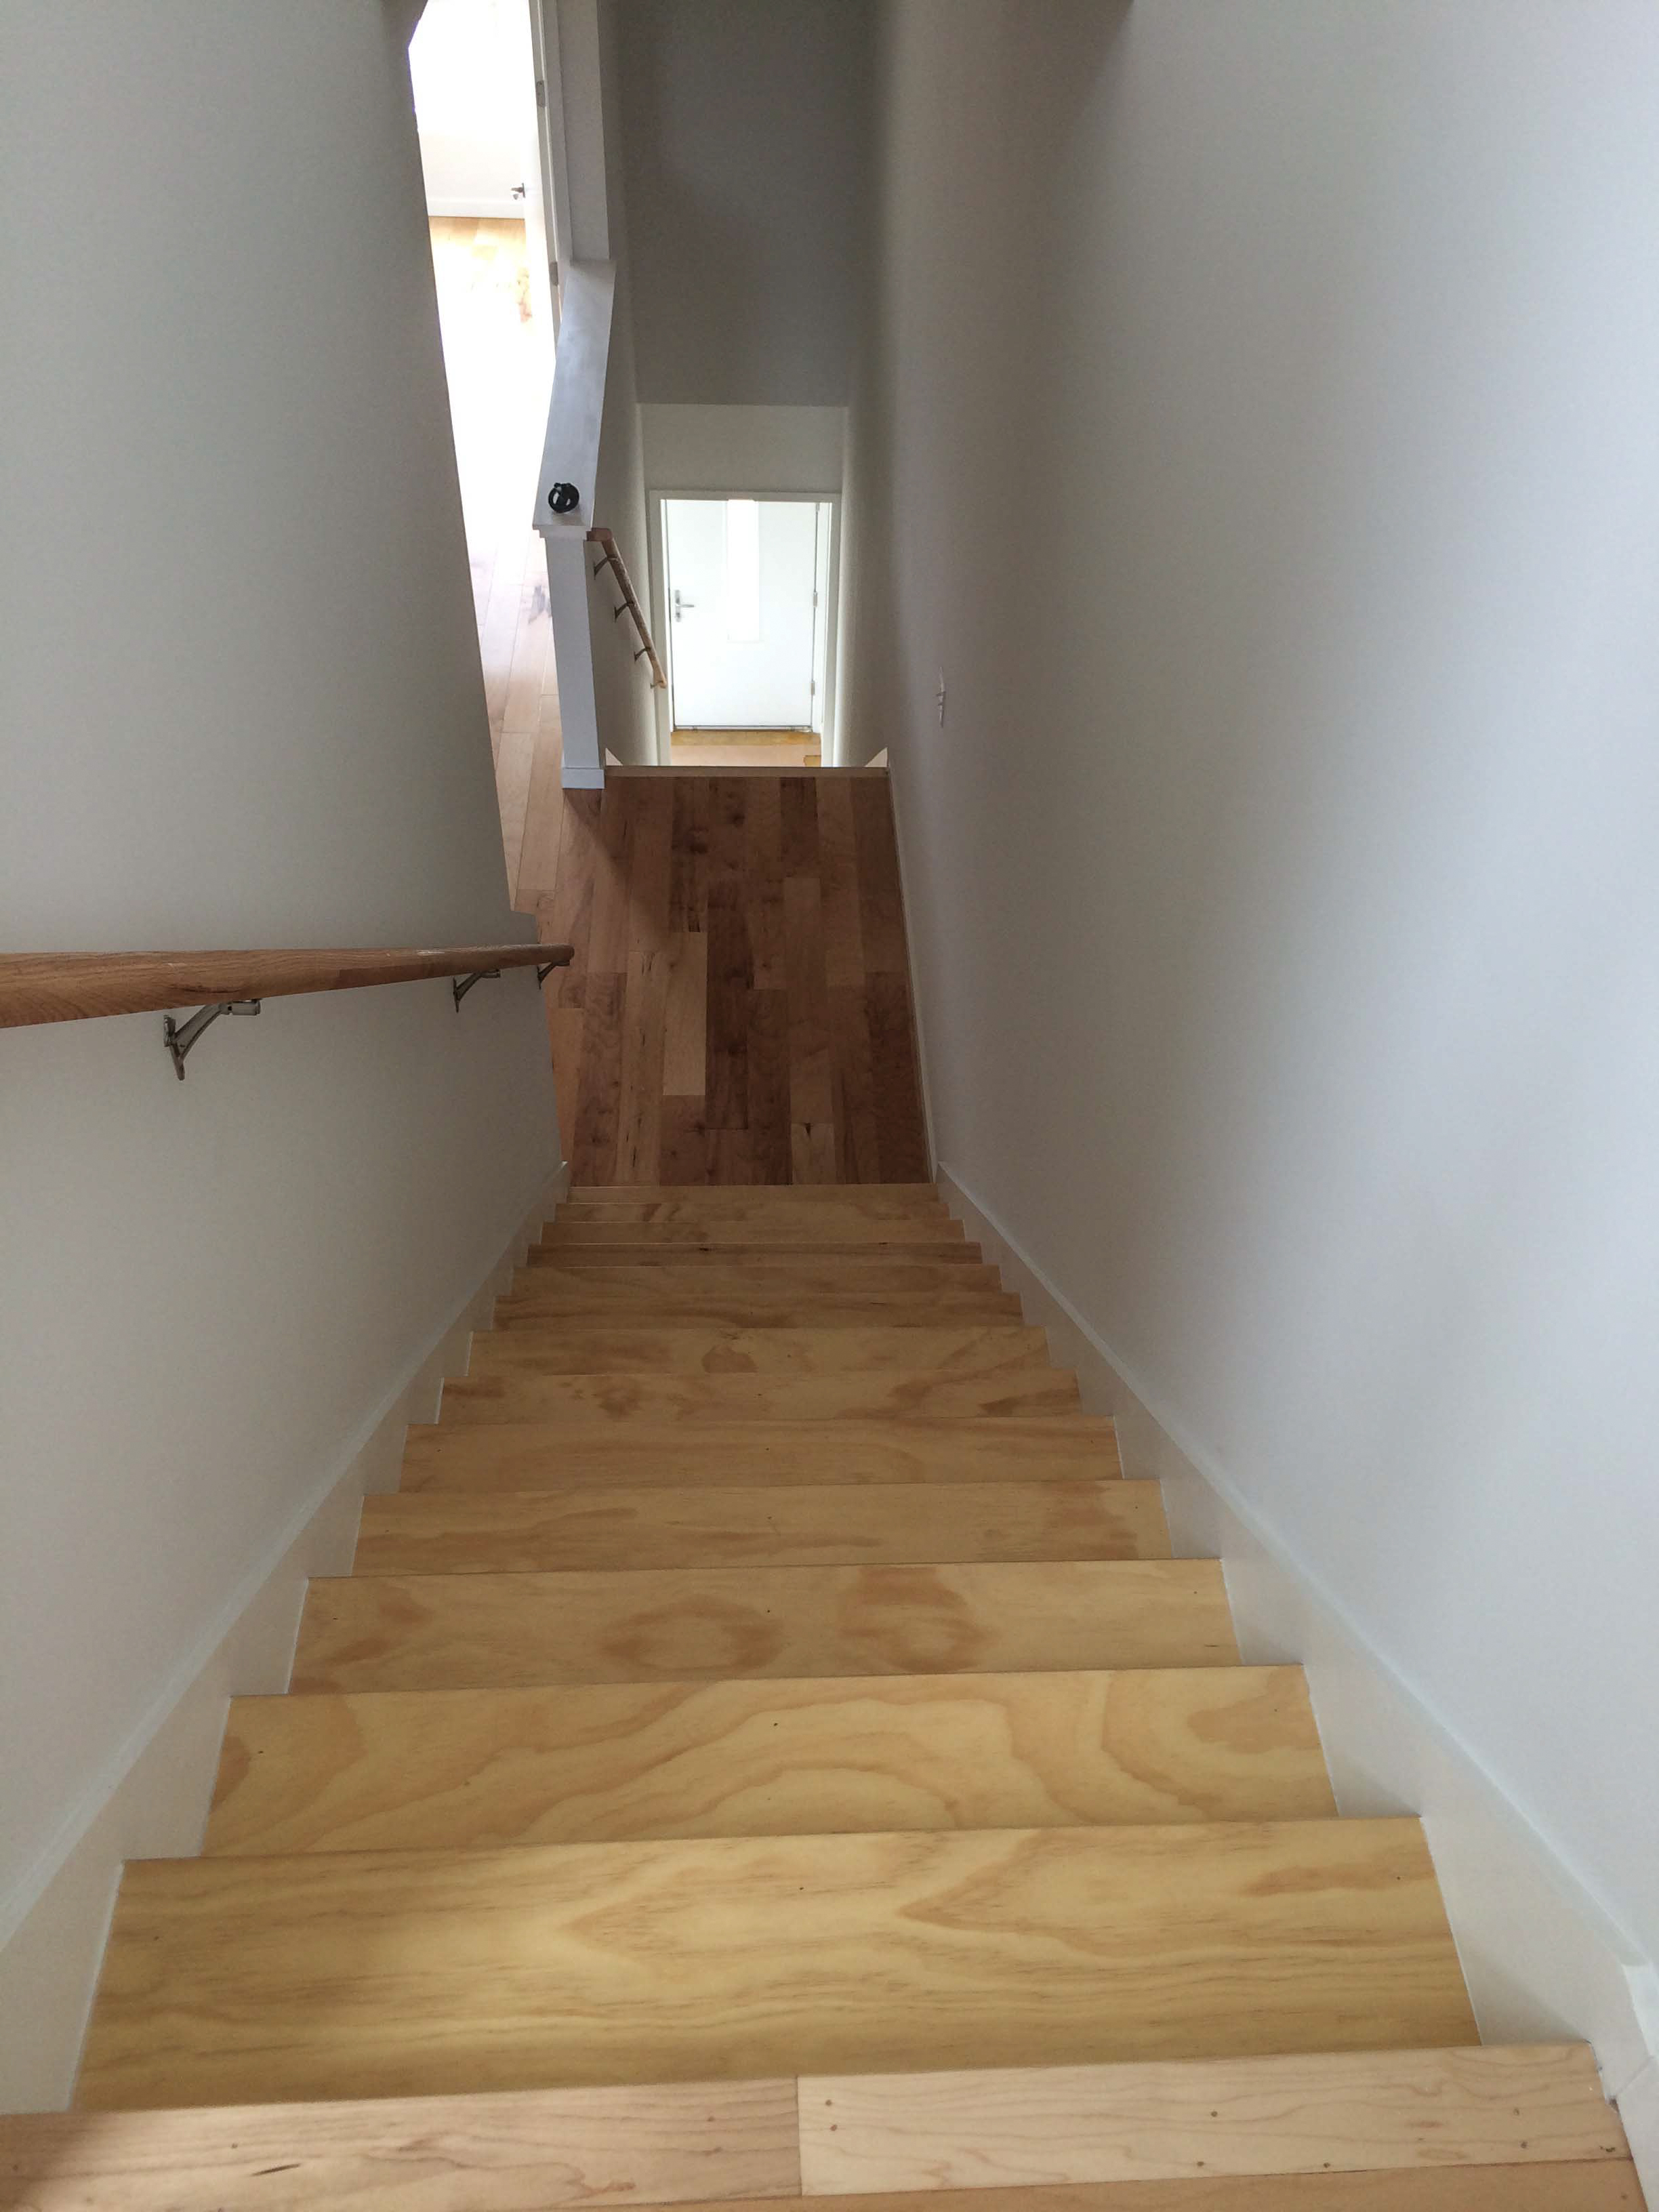 Rogue Townhomes stairway